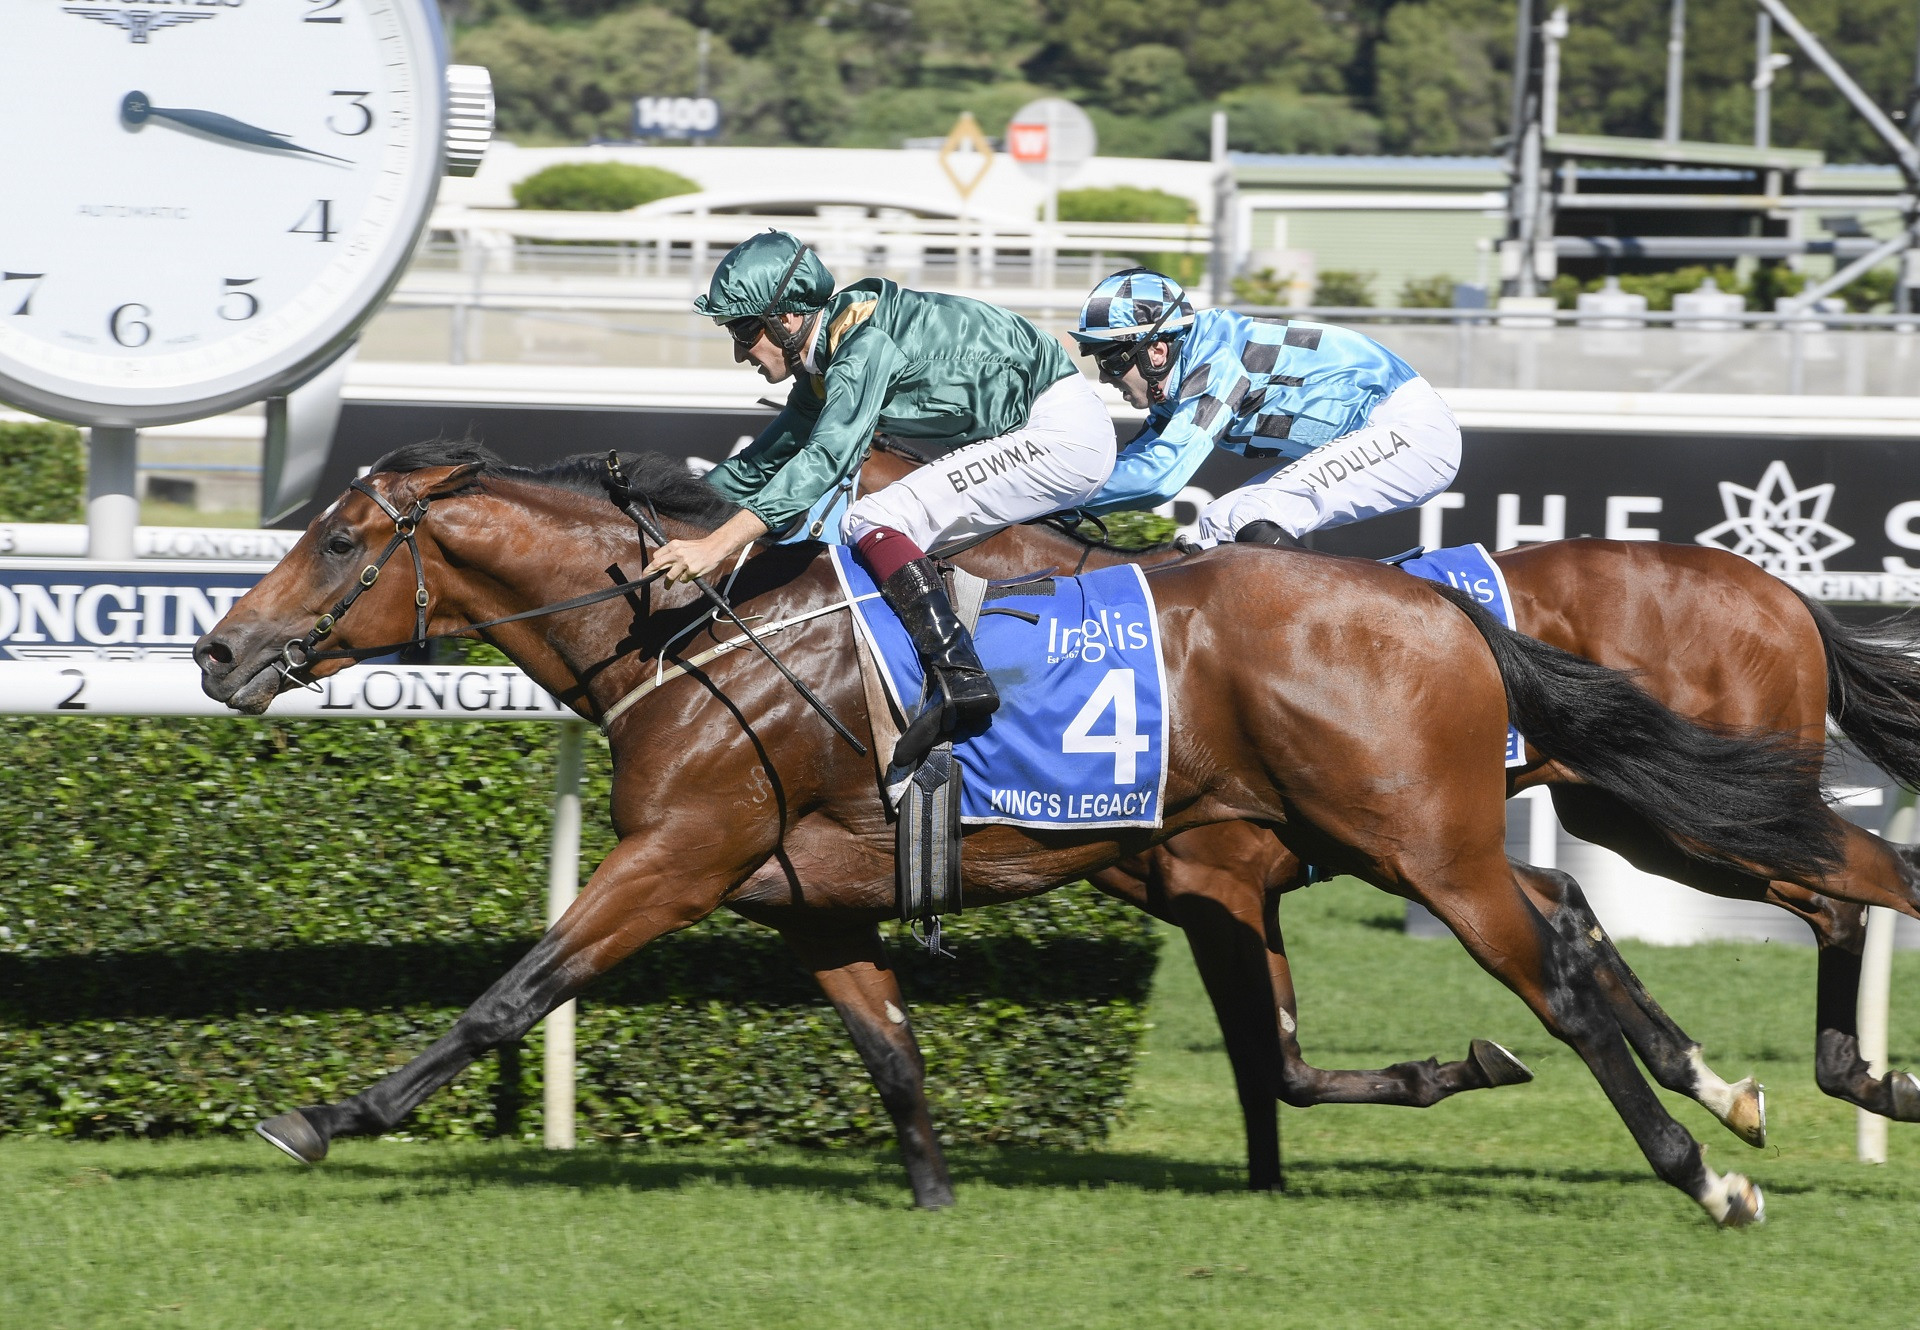 Kings-Legacy-winning-the-2020-Inglis-Sires-at-Randwick.jpg#asset:26015